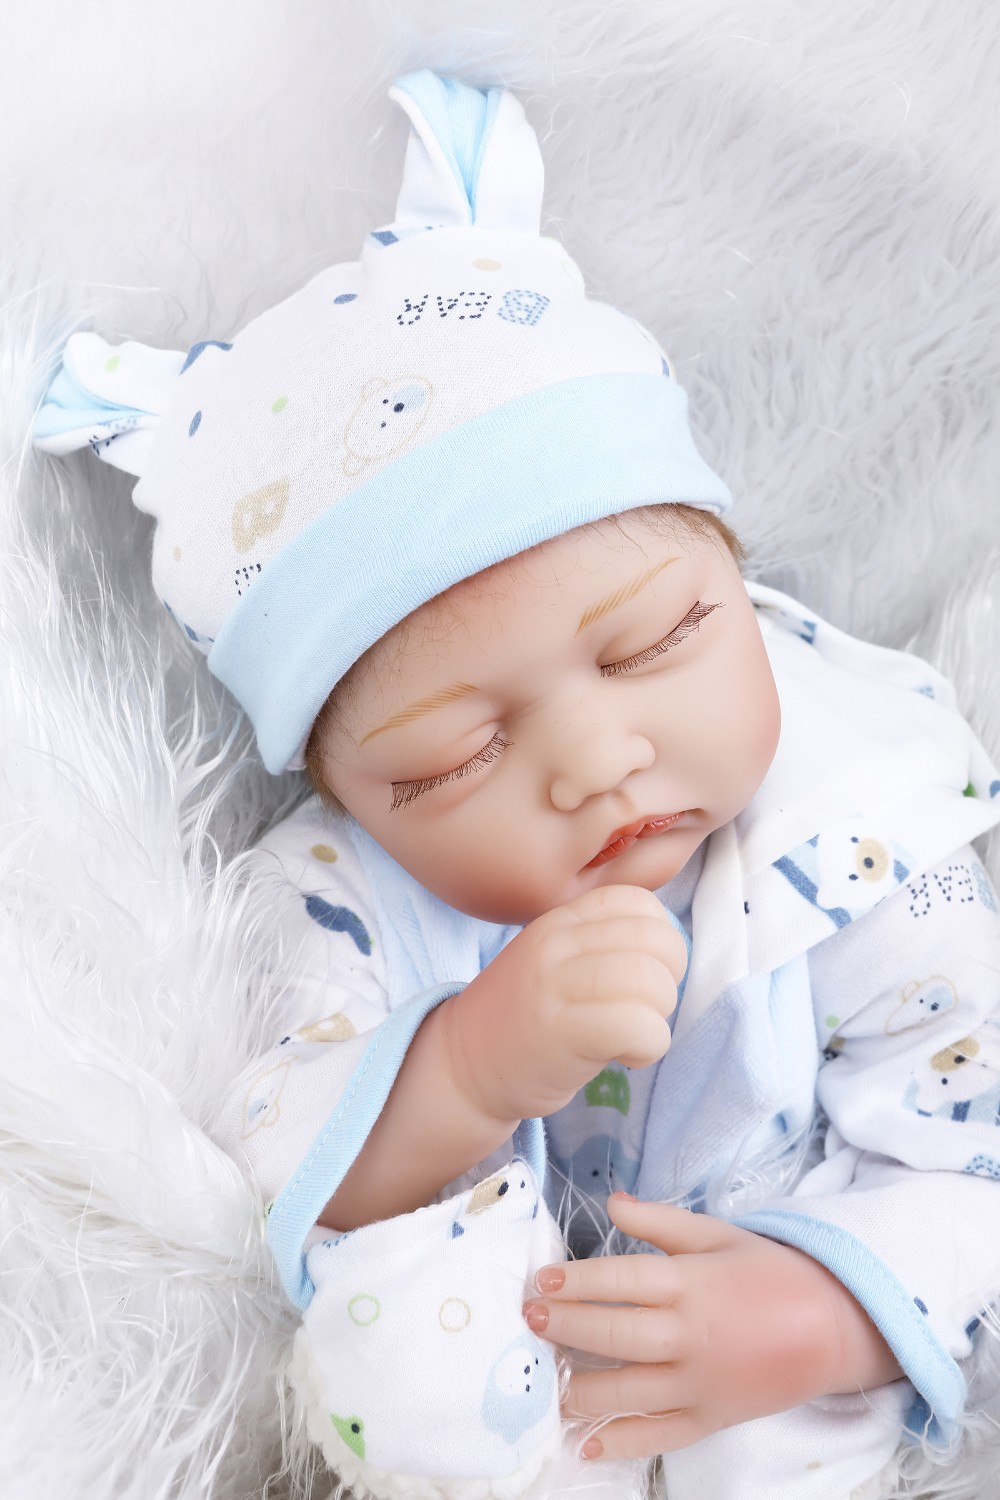 doll alive reborn doll with soft real gentle touch22inch sleeping baby doll lifelike silicone vinyl Christmas Gift sweet baby new fashion design reborn toddler doll rooted hair soft silicone vinyl real gentle touch 28inches fashion gift for birthday